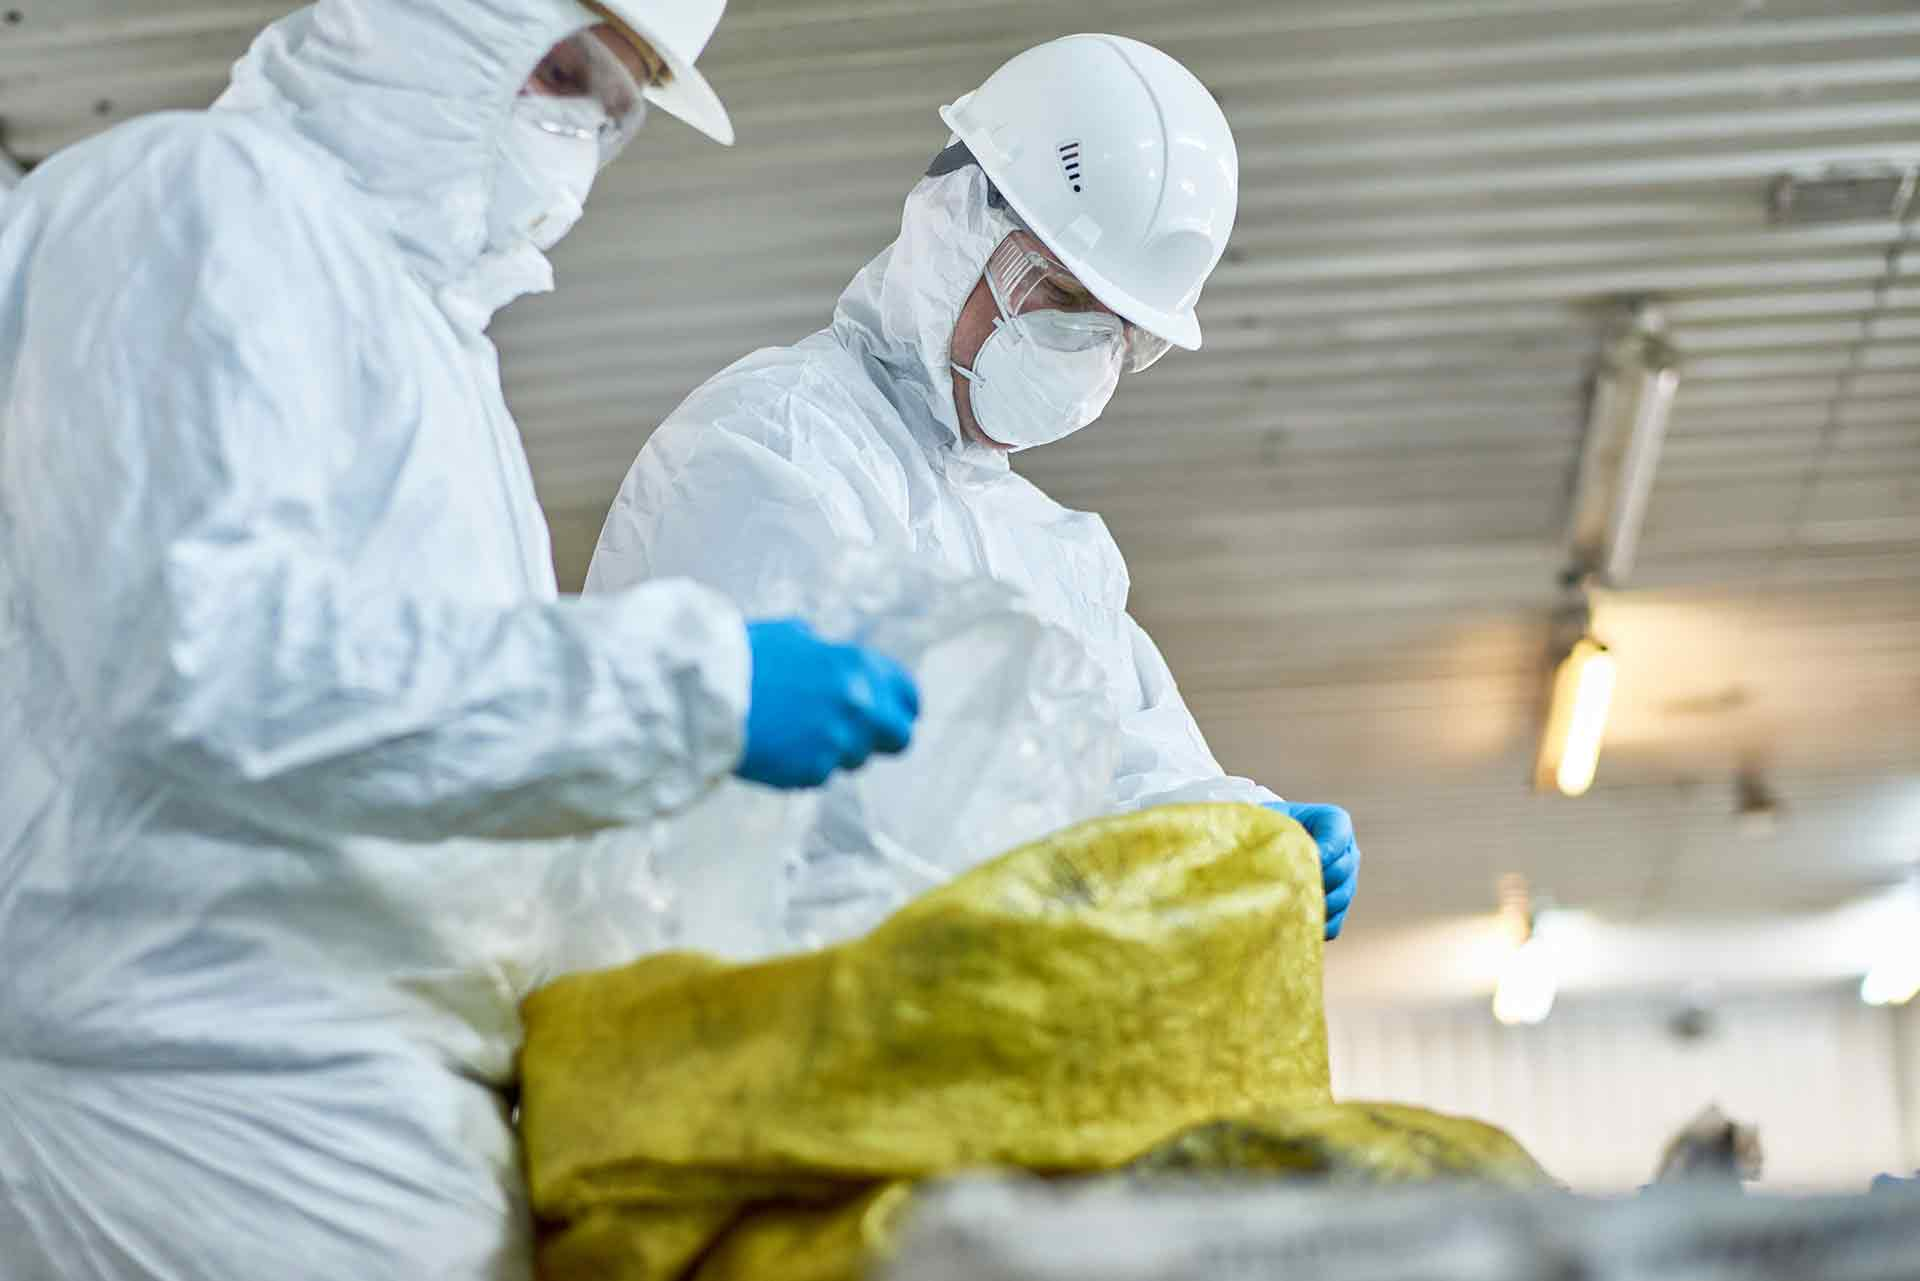 What Is A Biohazard Cleaning Service?